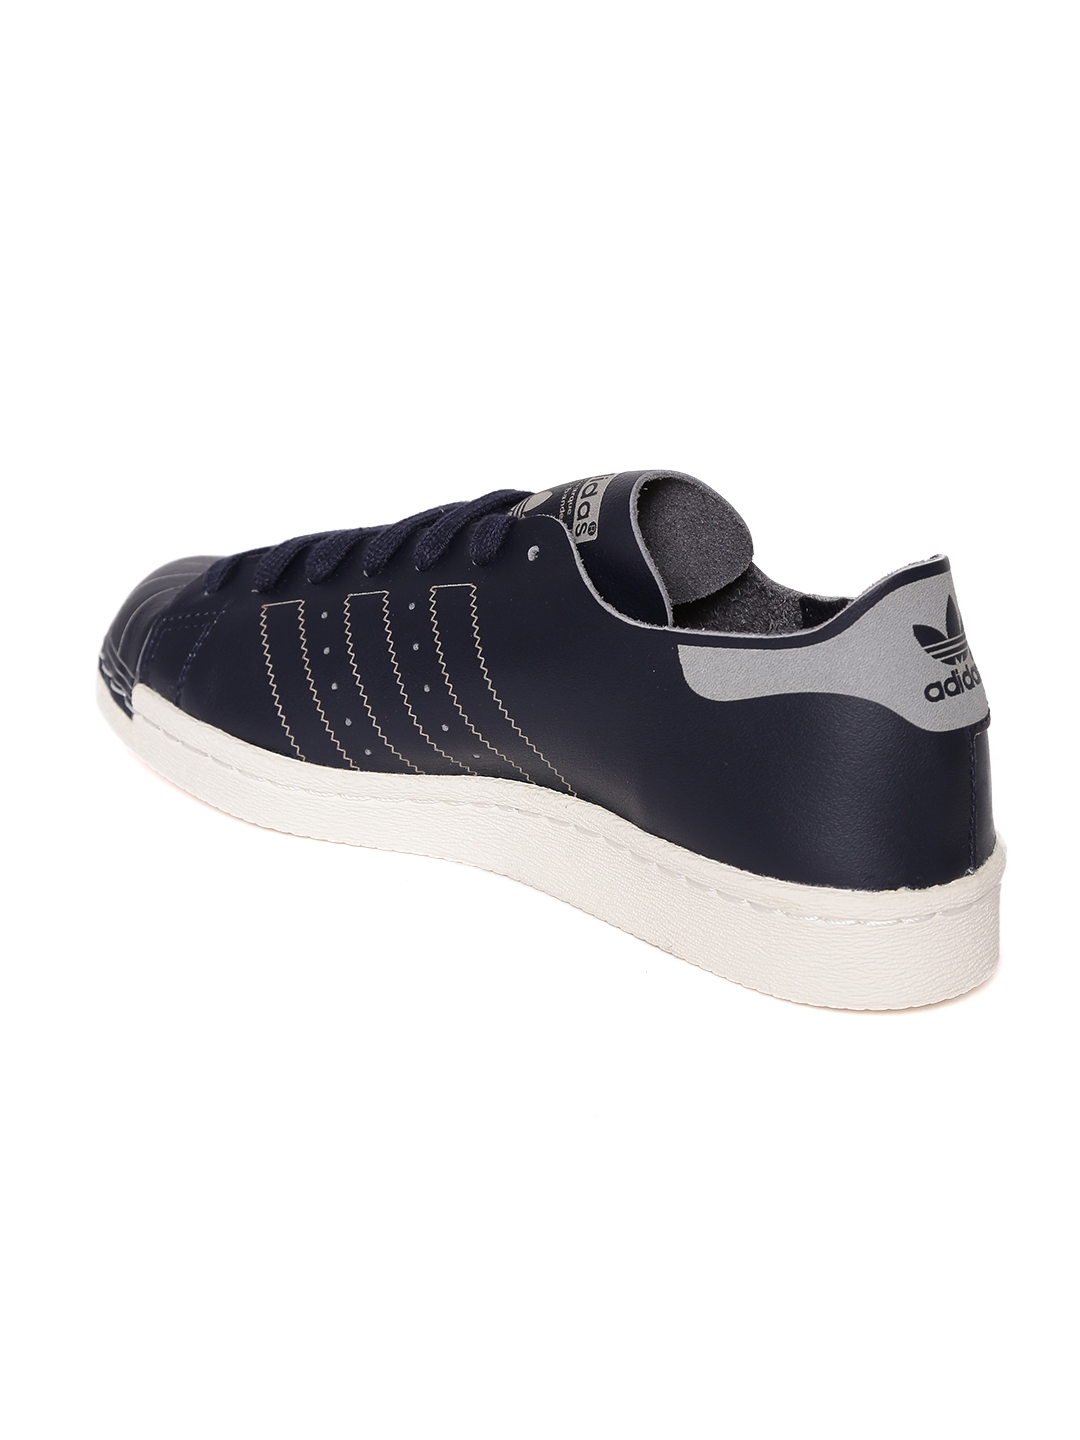 the latest ea383 a060c Adidas Originals Women Navy Superstar 80S DECON Leather Sneakers